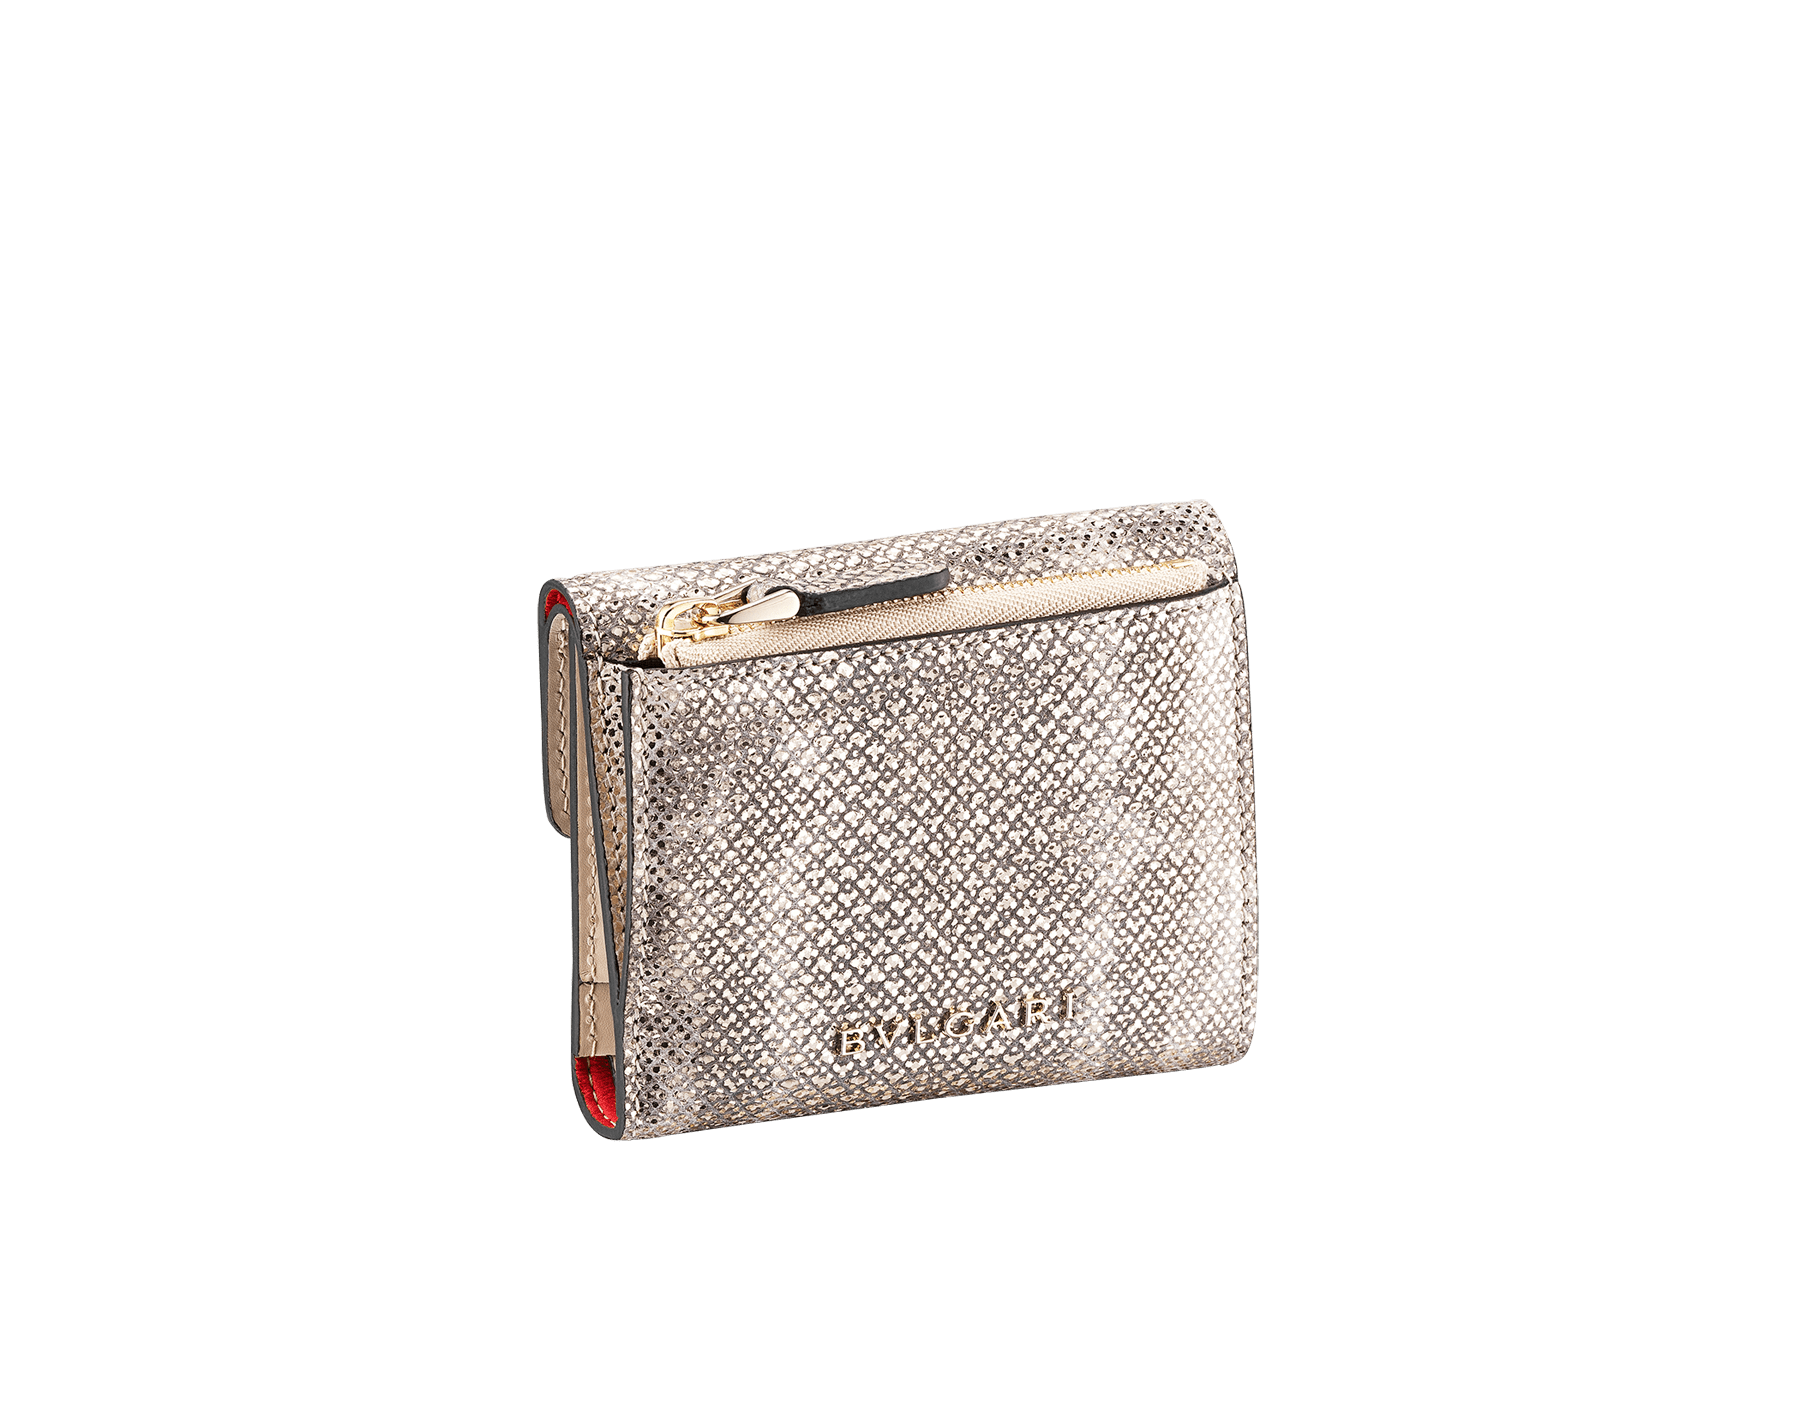 Serpenti Forever slim compact wallet in milky opal karung skin and milky opal calf leather. Iconic snakehead stud closure in black and glitter milky opal enamel, with black onyx eyes 289205 image 3